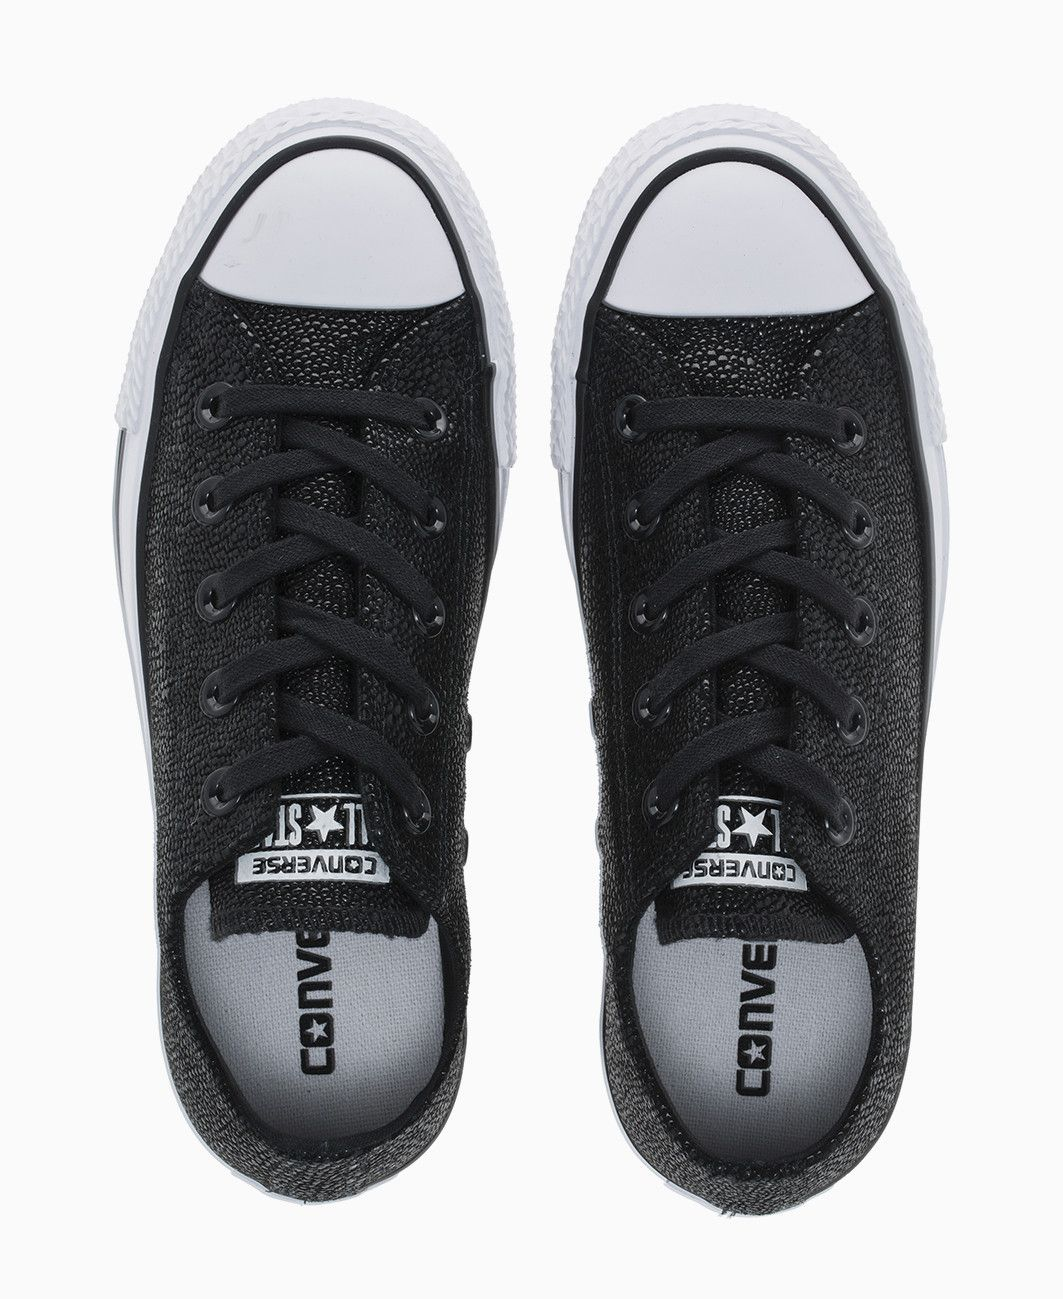 bd11d4b44d37 Converse - Stingray Leather Allstar Ox Trainers - Black - Shoes   Trainers  - Womens